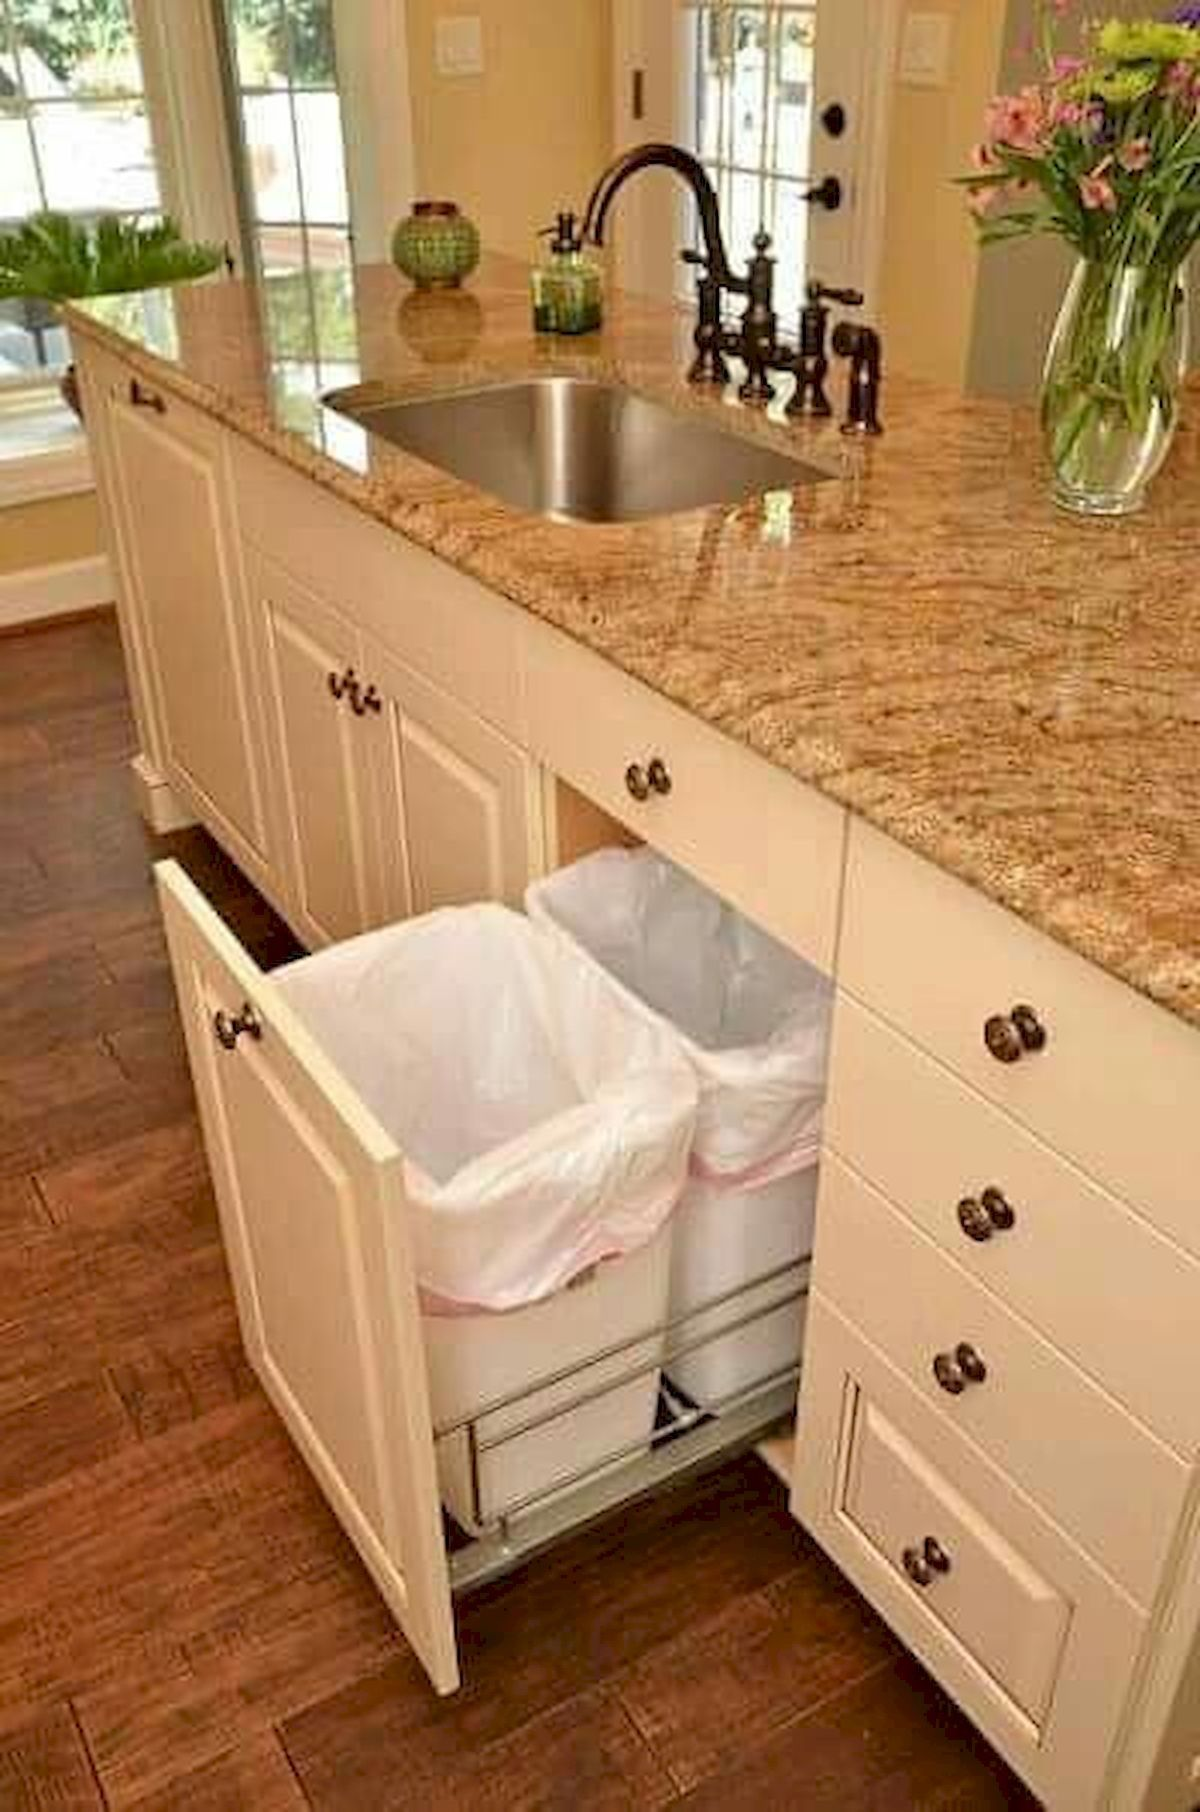 23 diy projects Storage kitchen cabinets ideas